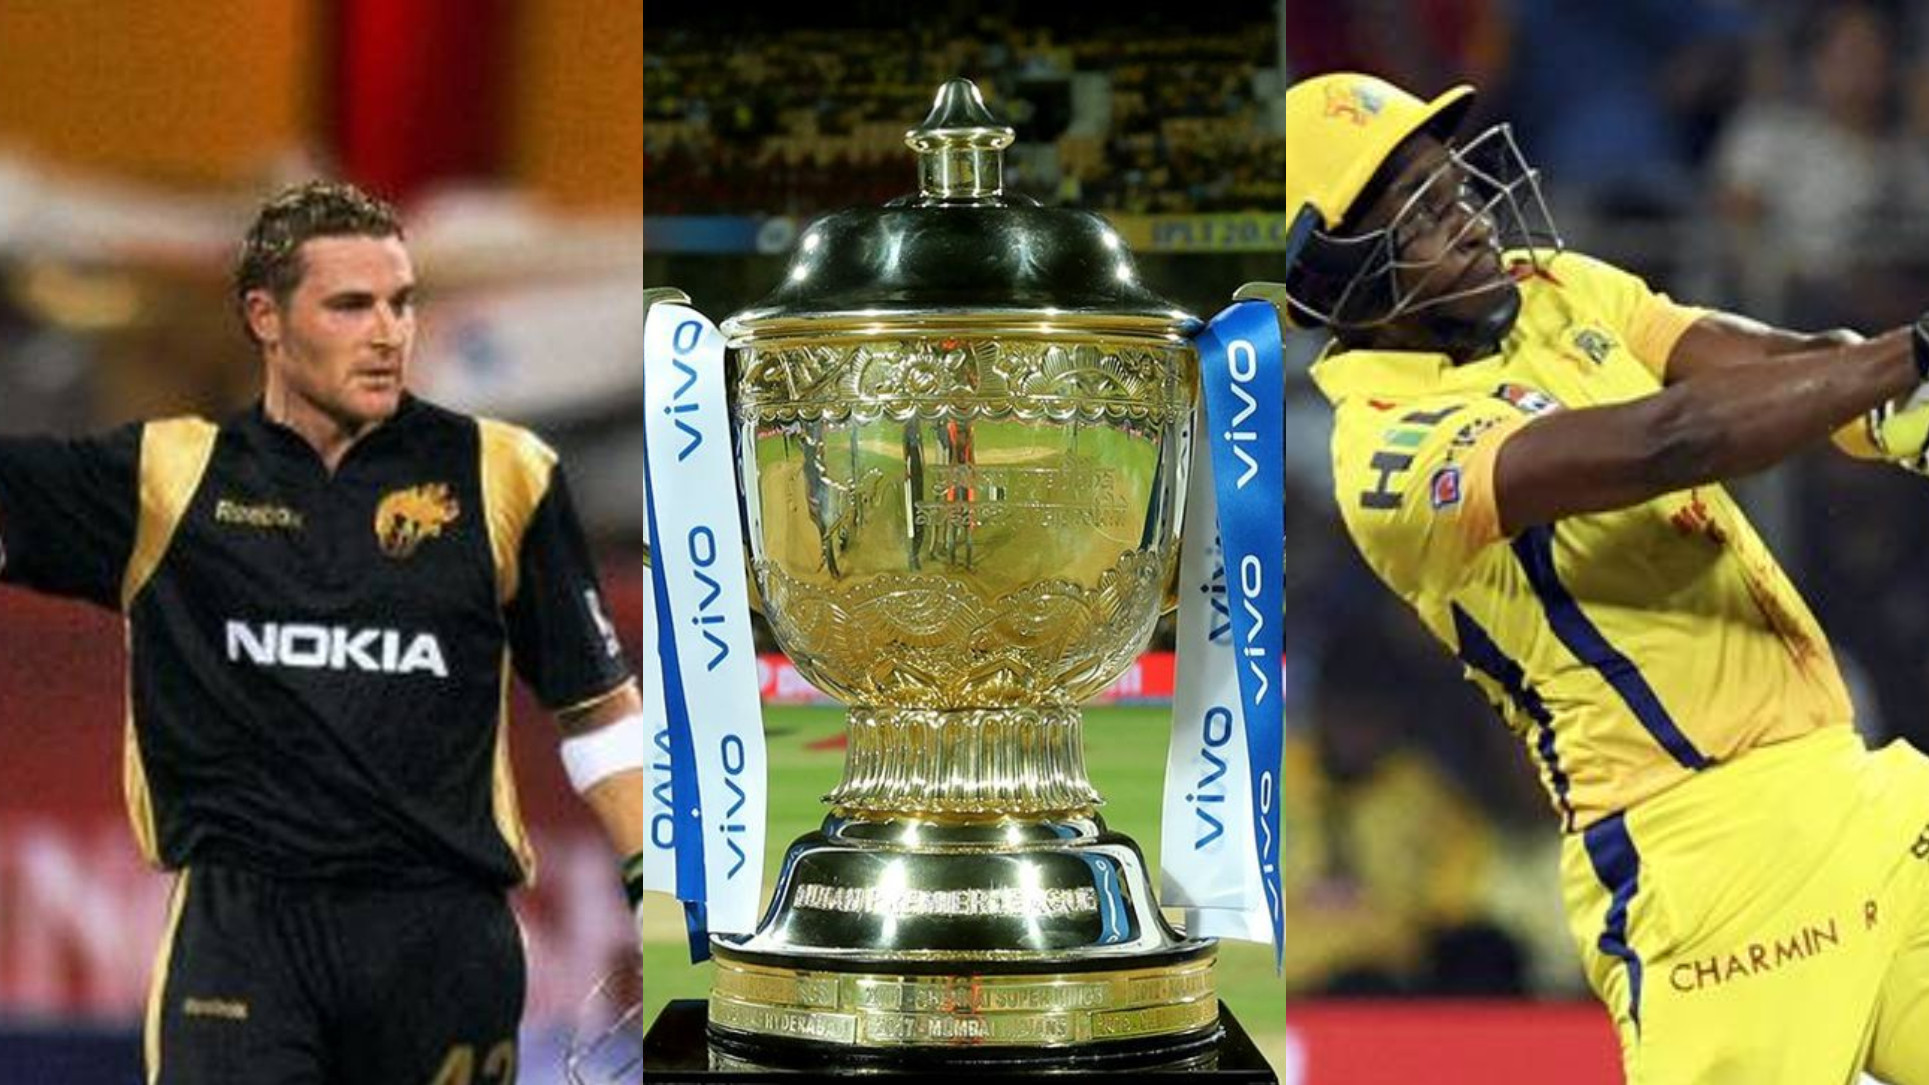 IPL 2021: From McCullum's blitz to Bravo's sting - A brief look at all season openers in IPL thus far